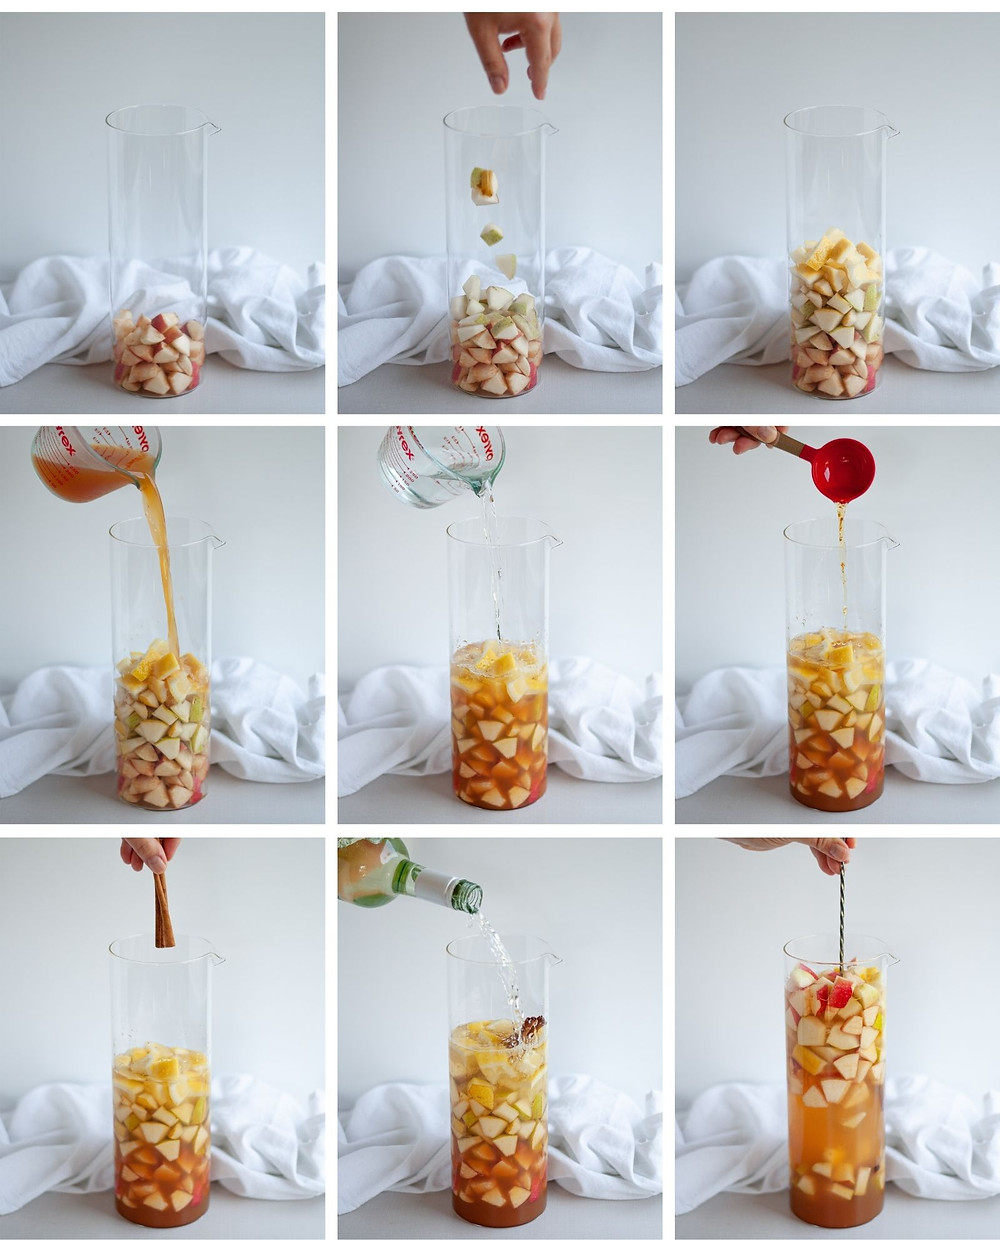 Collage showing how to make sangria step-by-step.